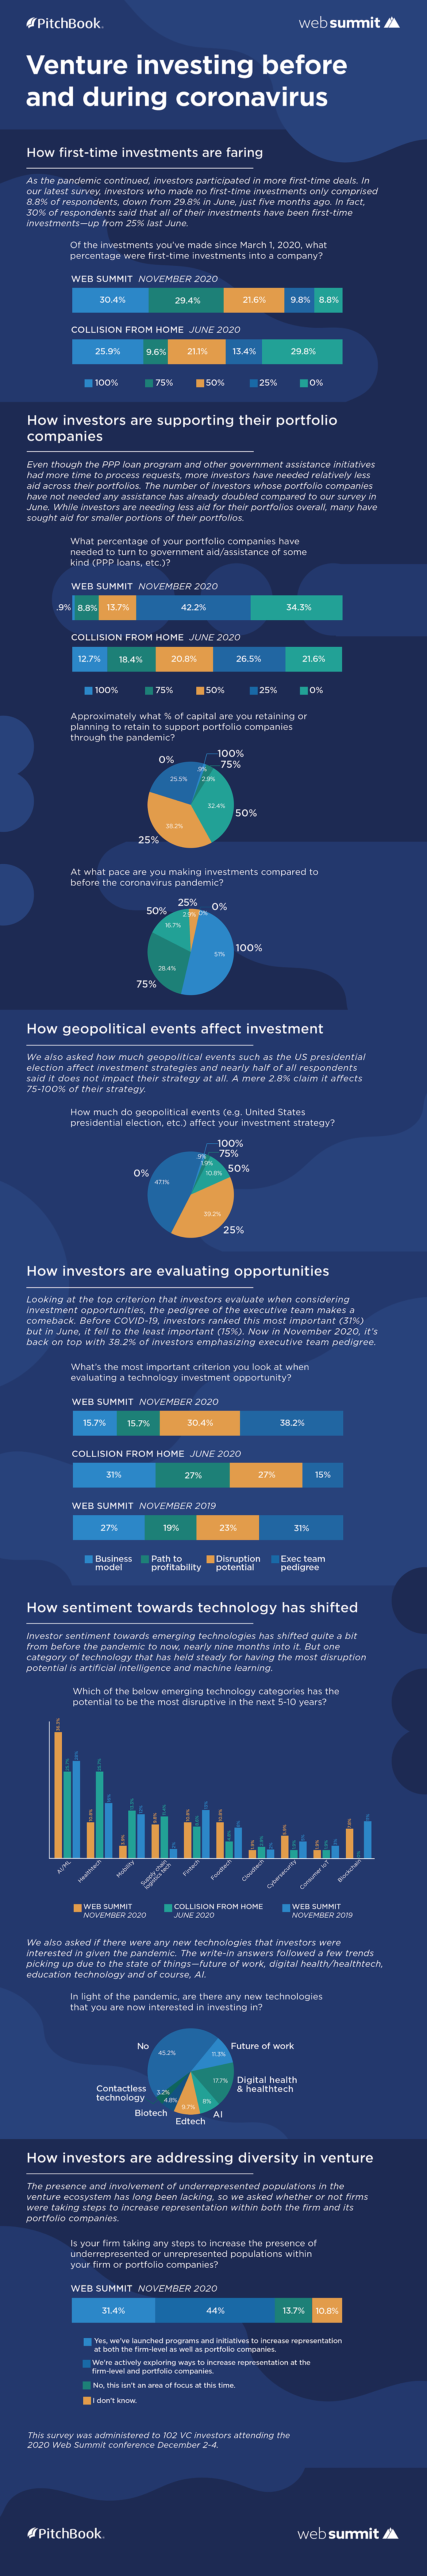 Venture investing before and during COVID-19